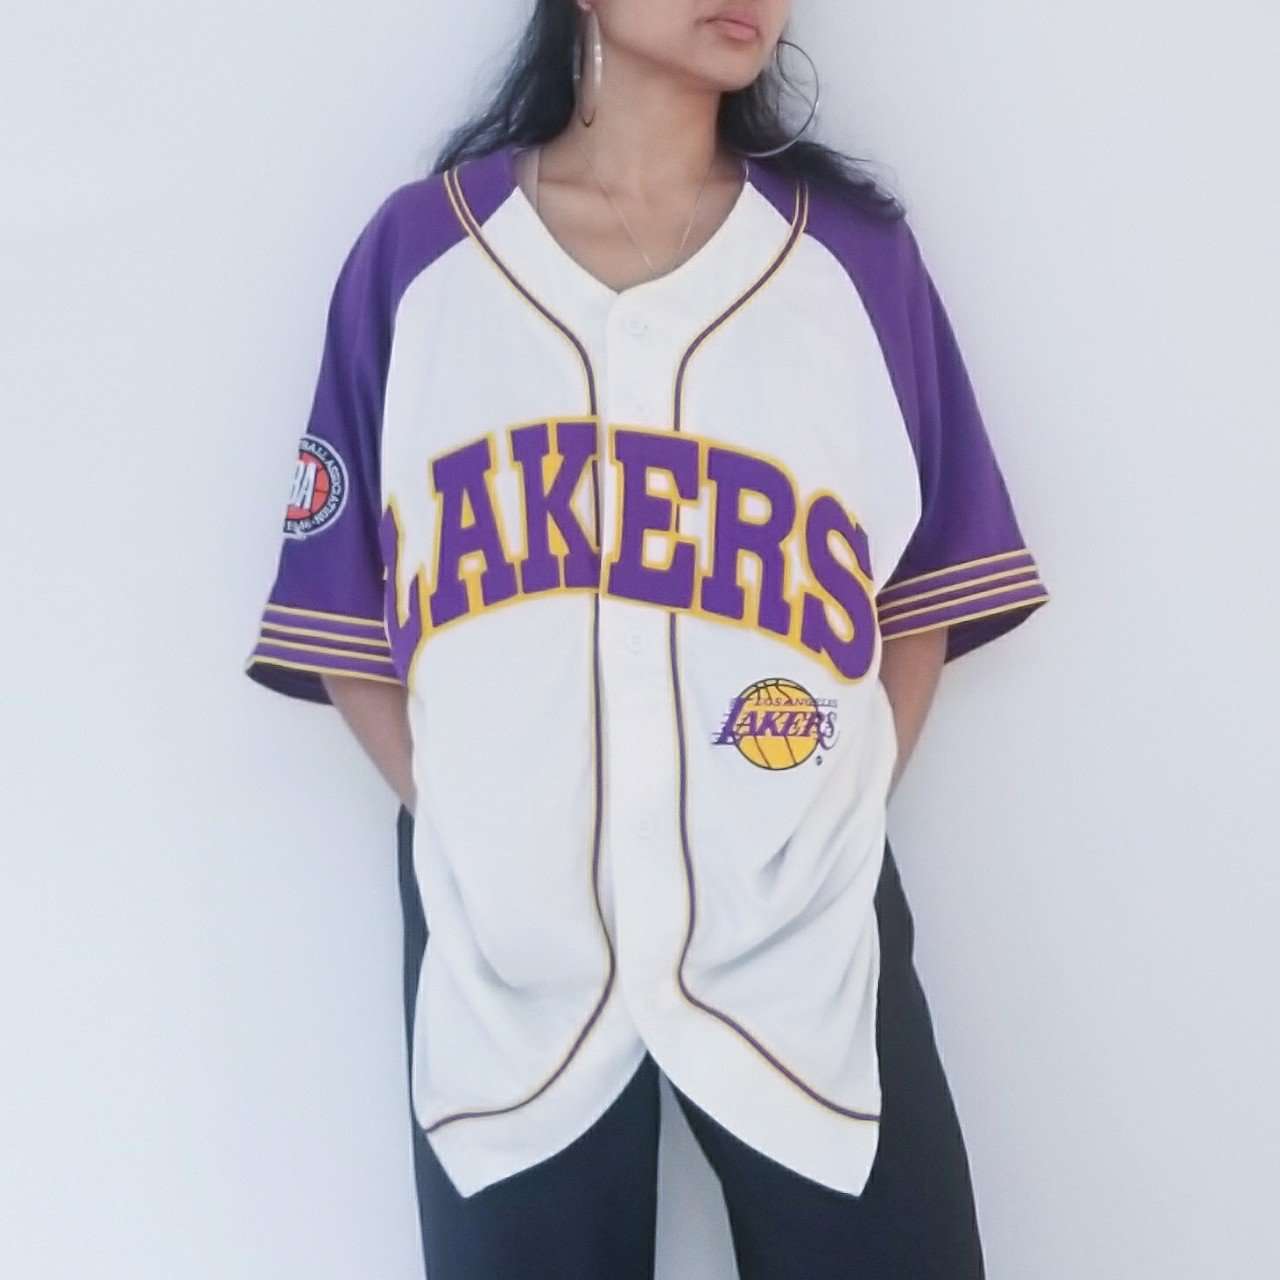 lakers baseball jersey Off 58% - www.bashhguidelines.org